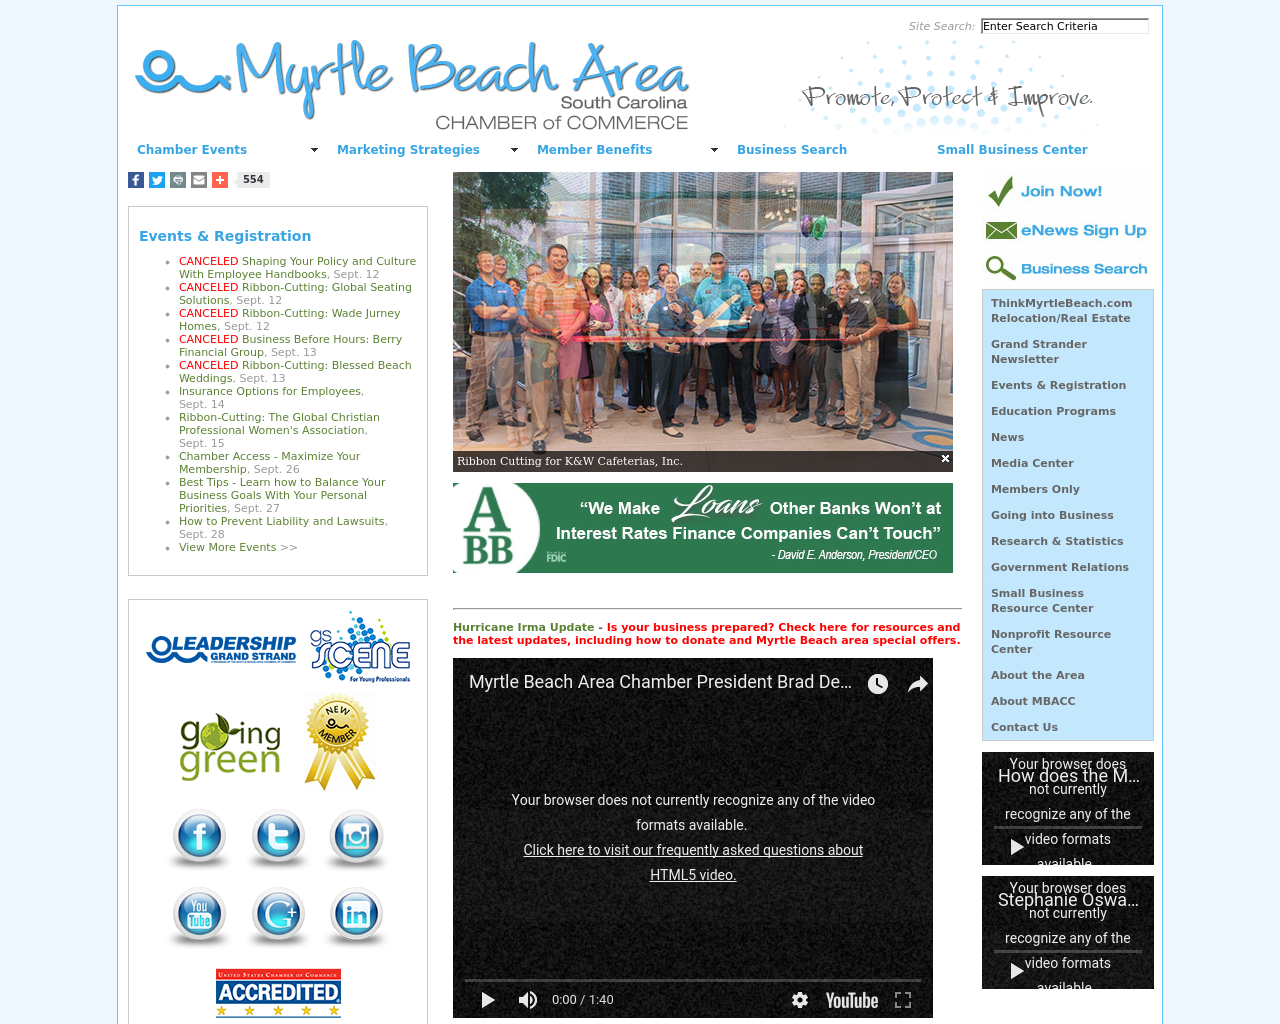 Myrtle-Beach-Area-Chamber-of-Commerce-Advertising-Reviews-Pricing